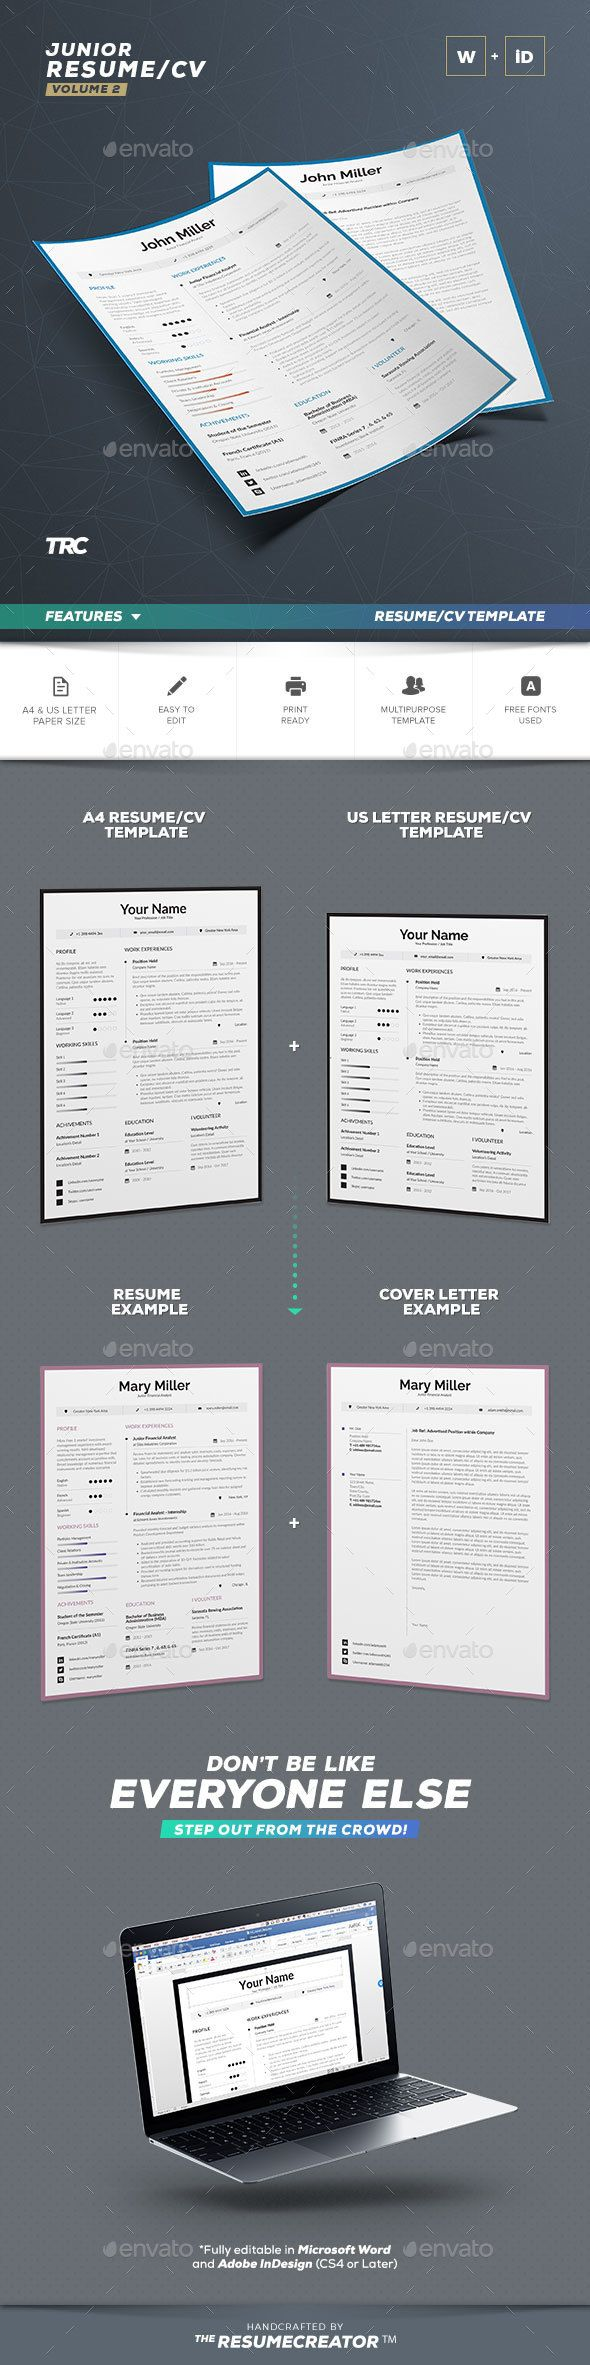 1255 best Resume images on Pinterest | Resume design, Curriculum and ...